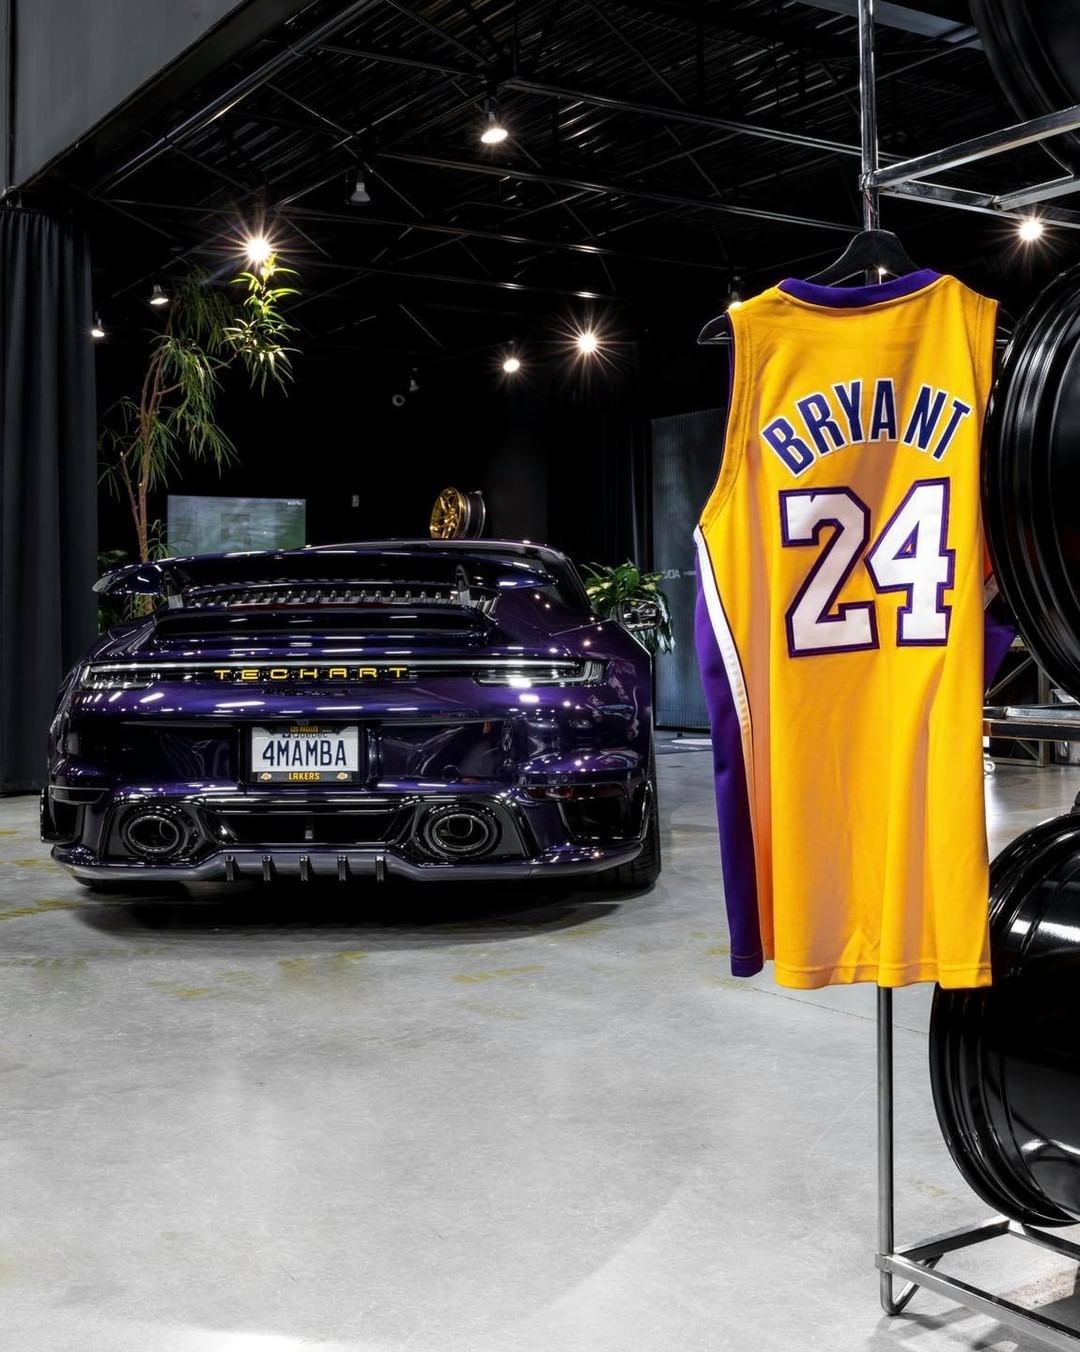 One-of-a-Kind Porsche 911 Turbo S Is a Tribute to Kobe Bryant